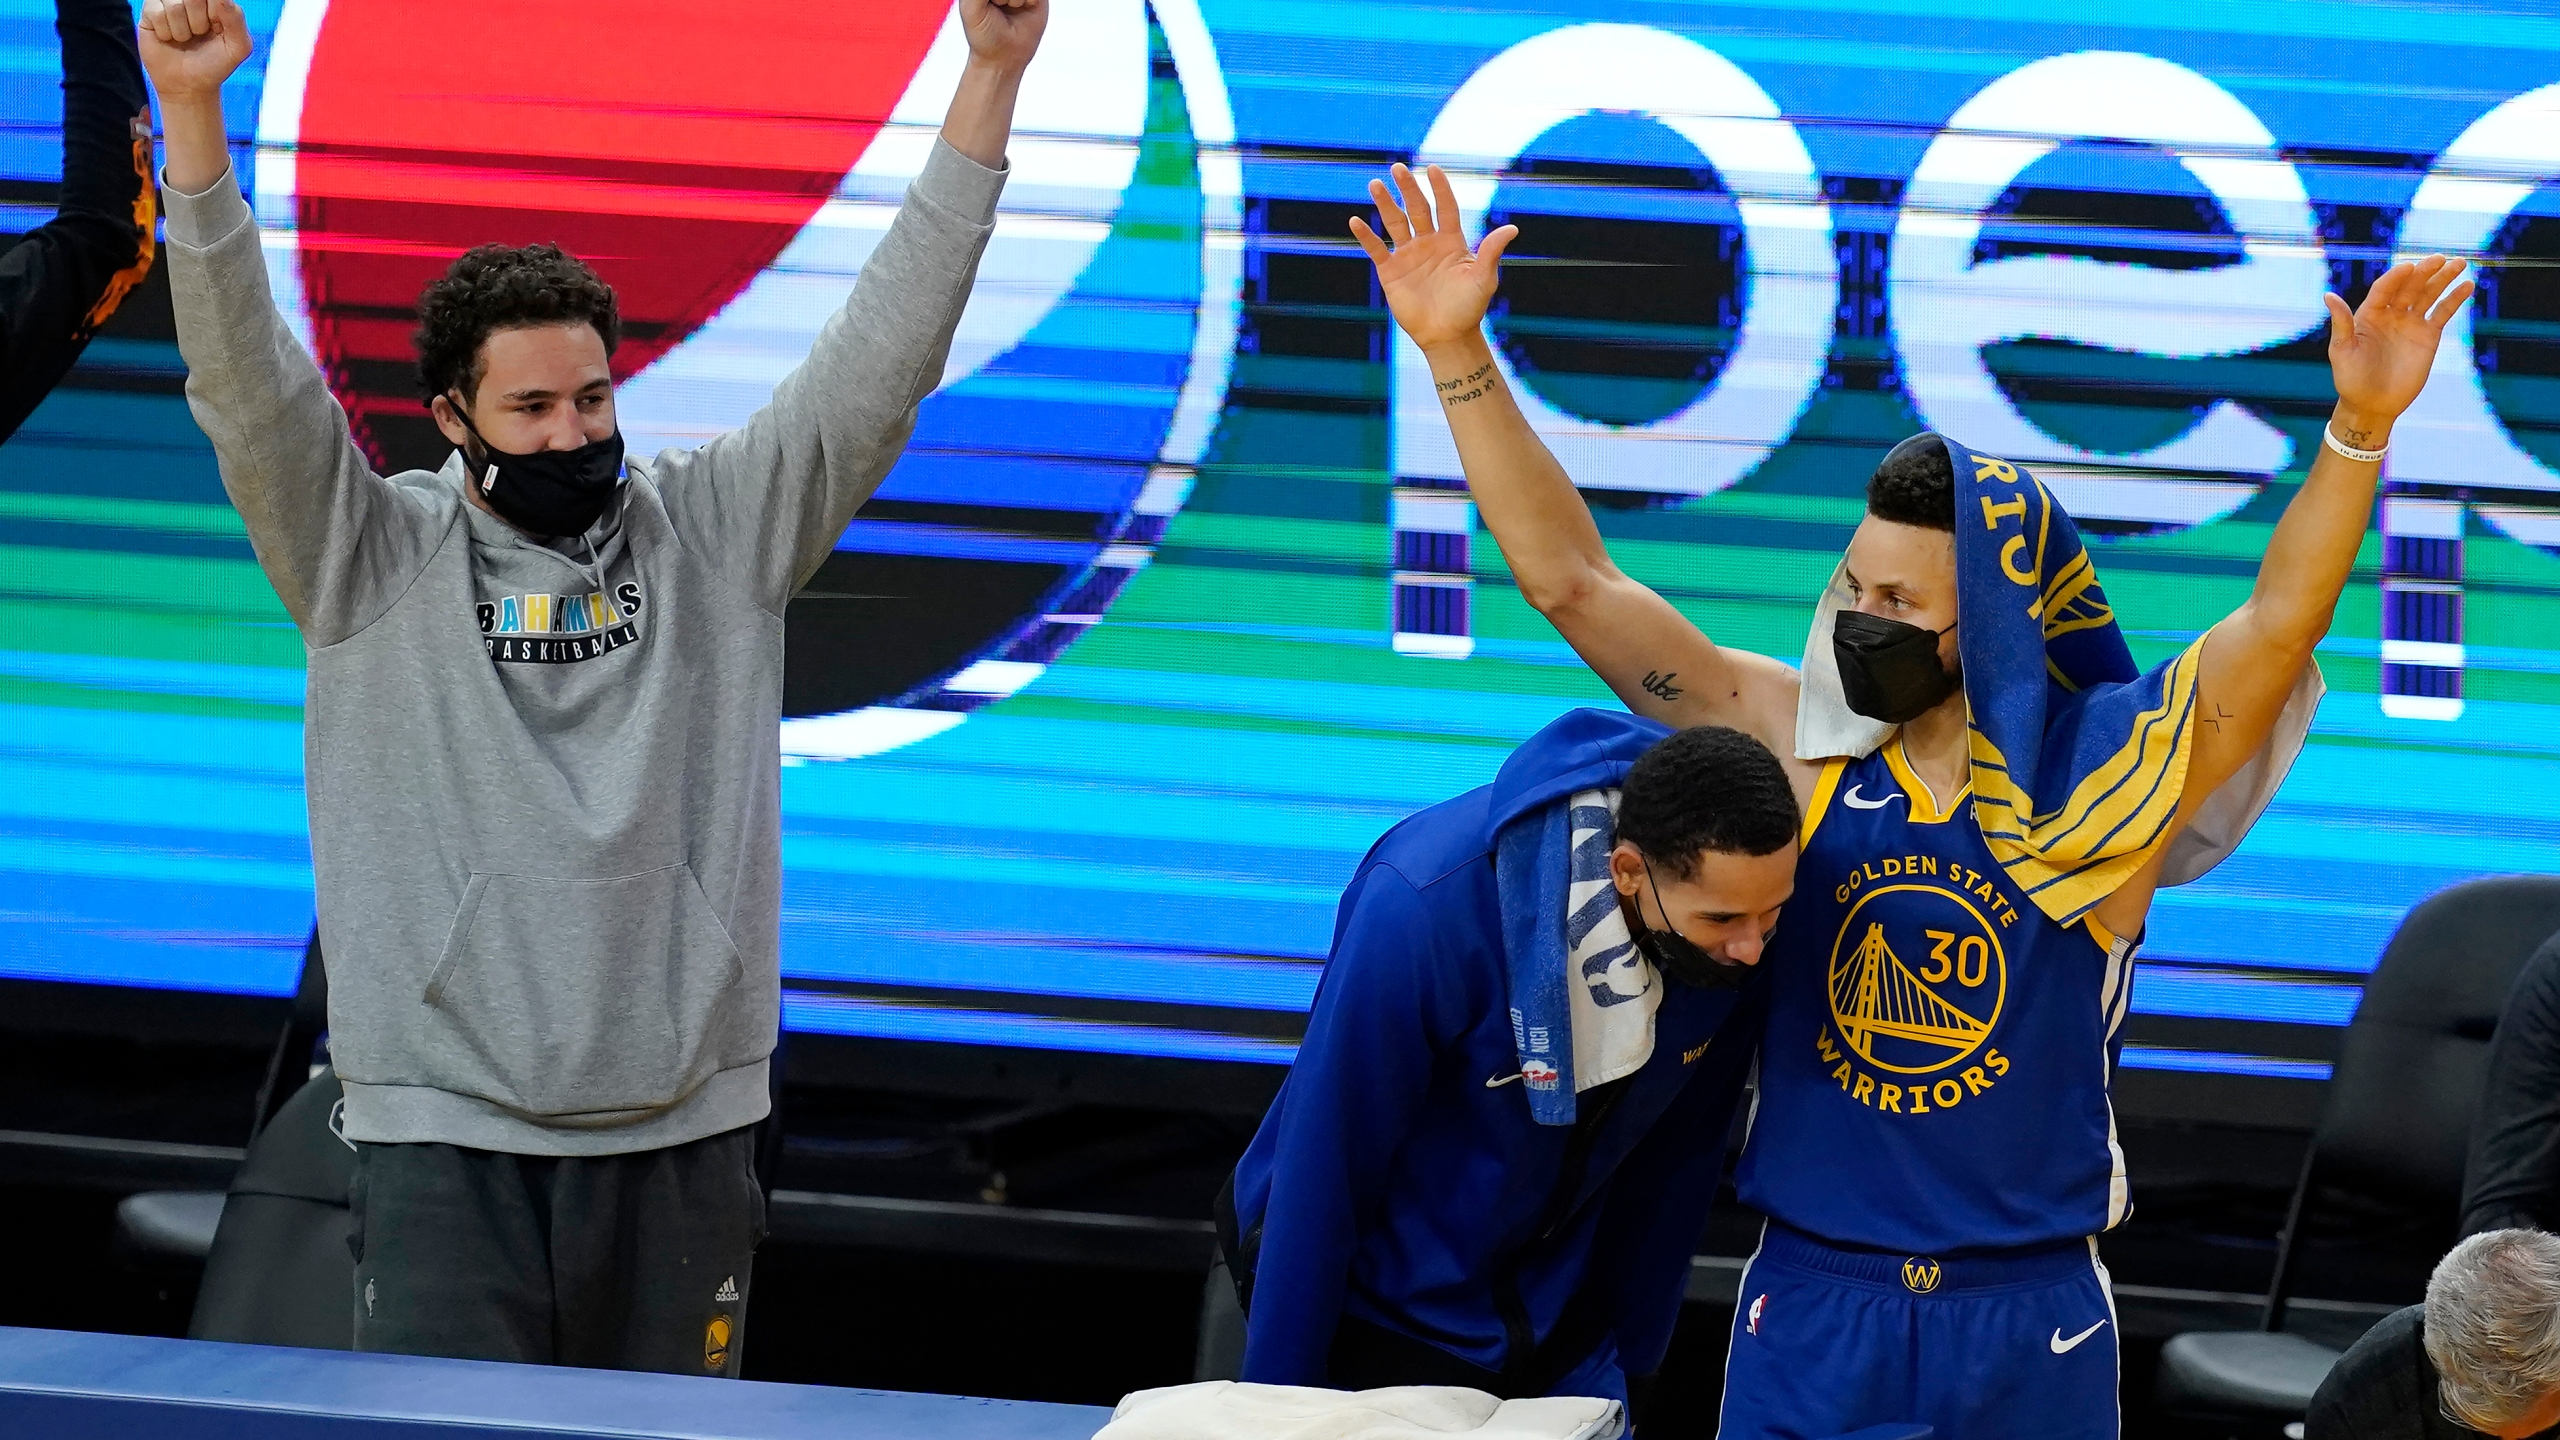 Stephen Curry, Klay Thompson, Juan Toscano-Anderson